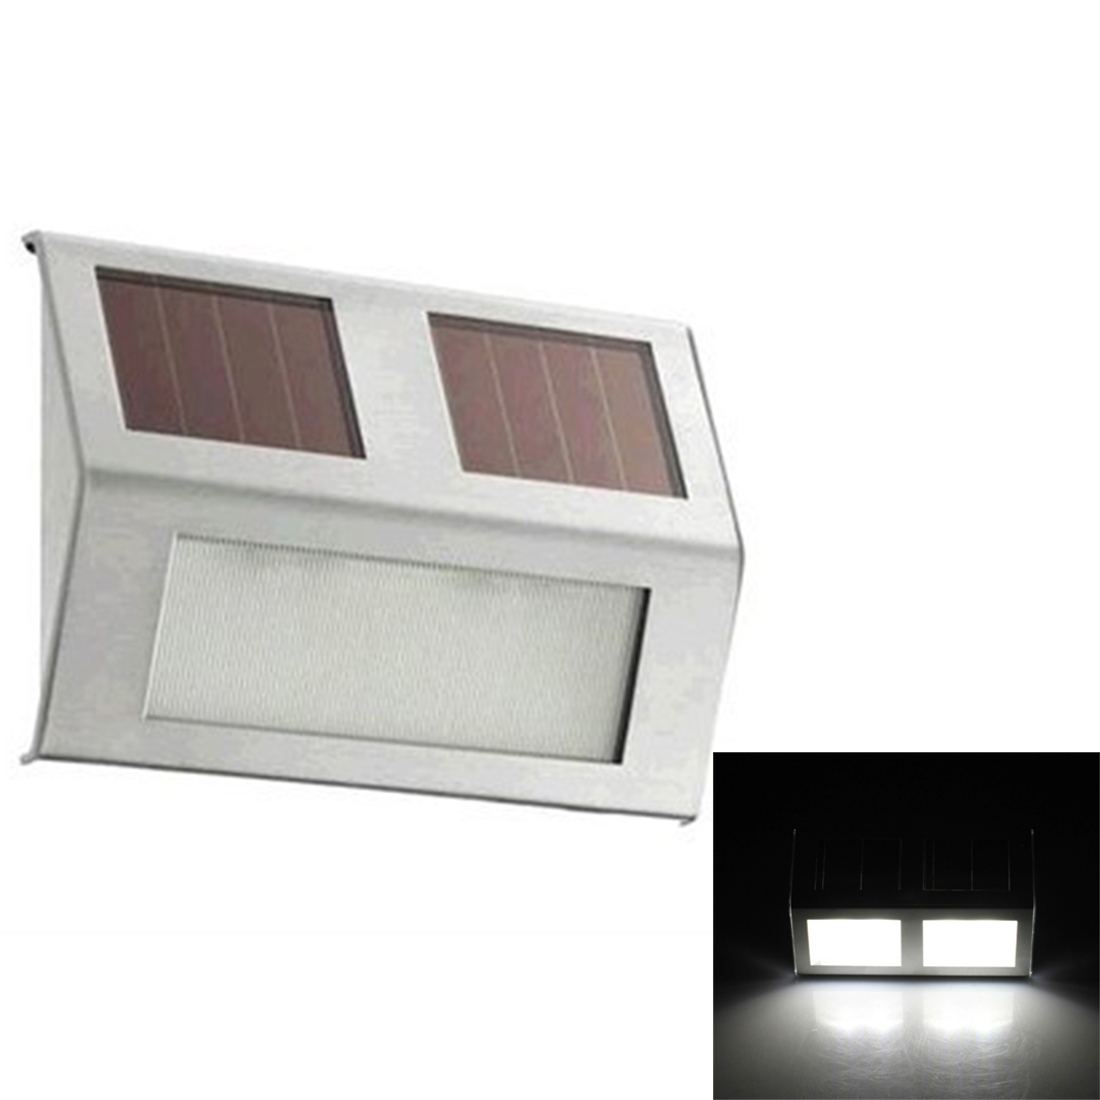 2 LEDs Solar Powered Light Sensor Control IP44 Waterproof LED Wall Lamp Outdoor Patio Yard Pathway Garden Stairs Step Night Security Lighting (White Light)